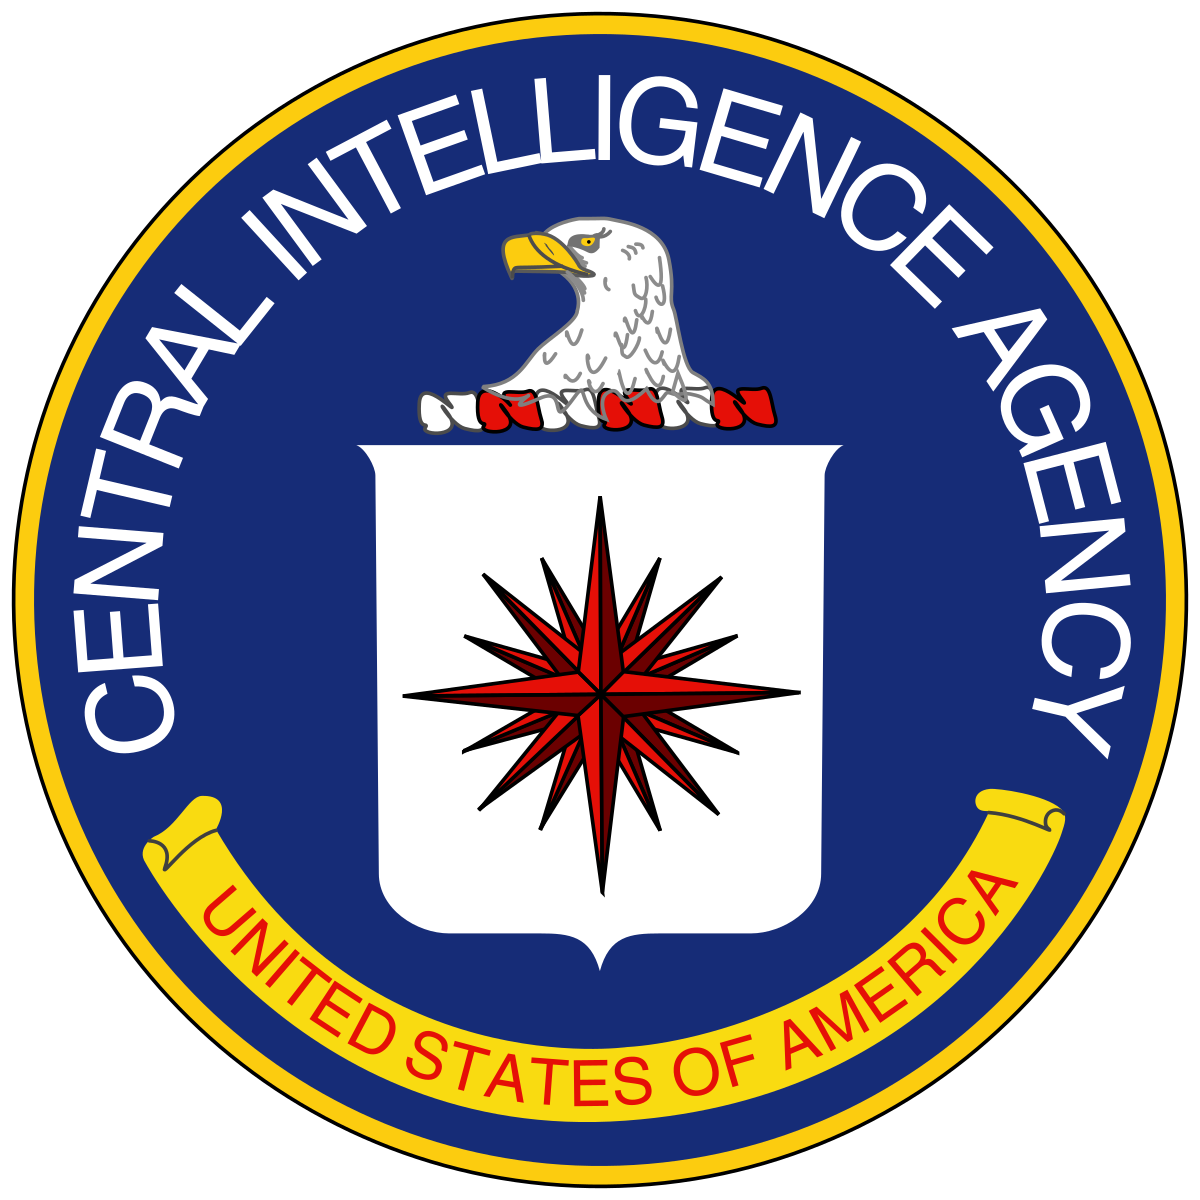 E Stole Payment Wanted Drug Mob Sipa Google Search Central Intelligence Agency Intelligence Agency Cia